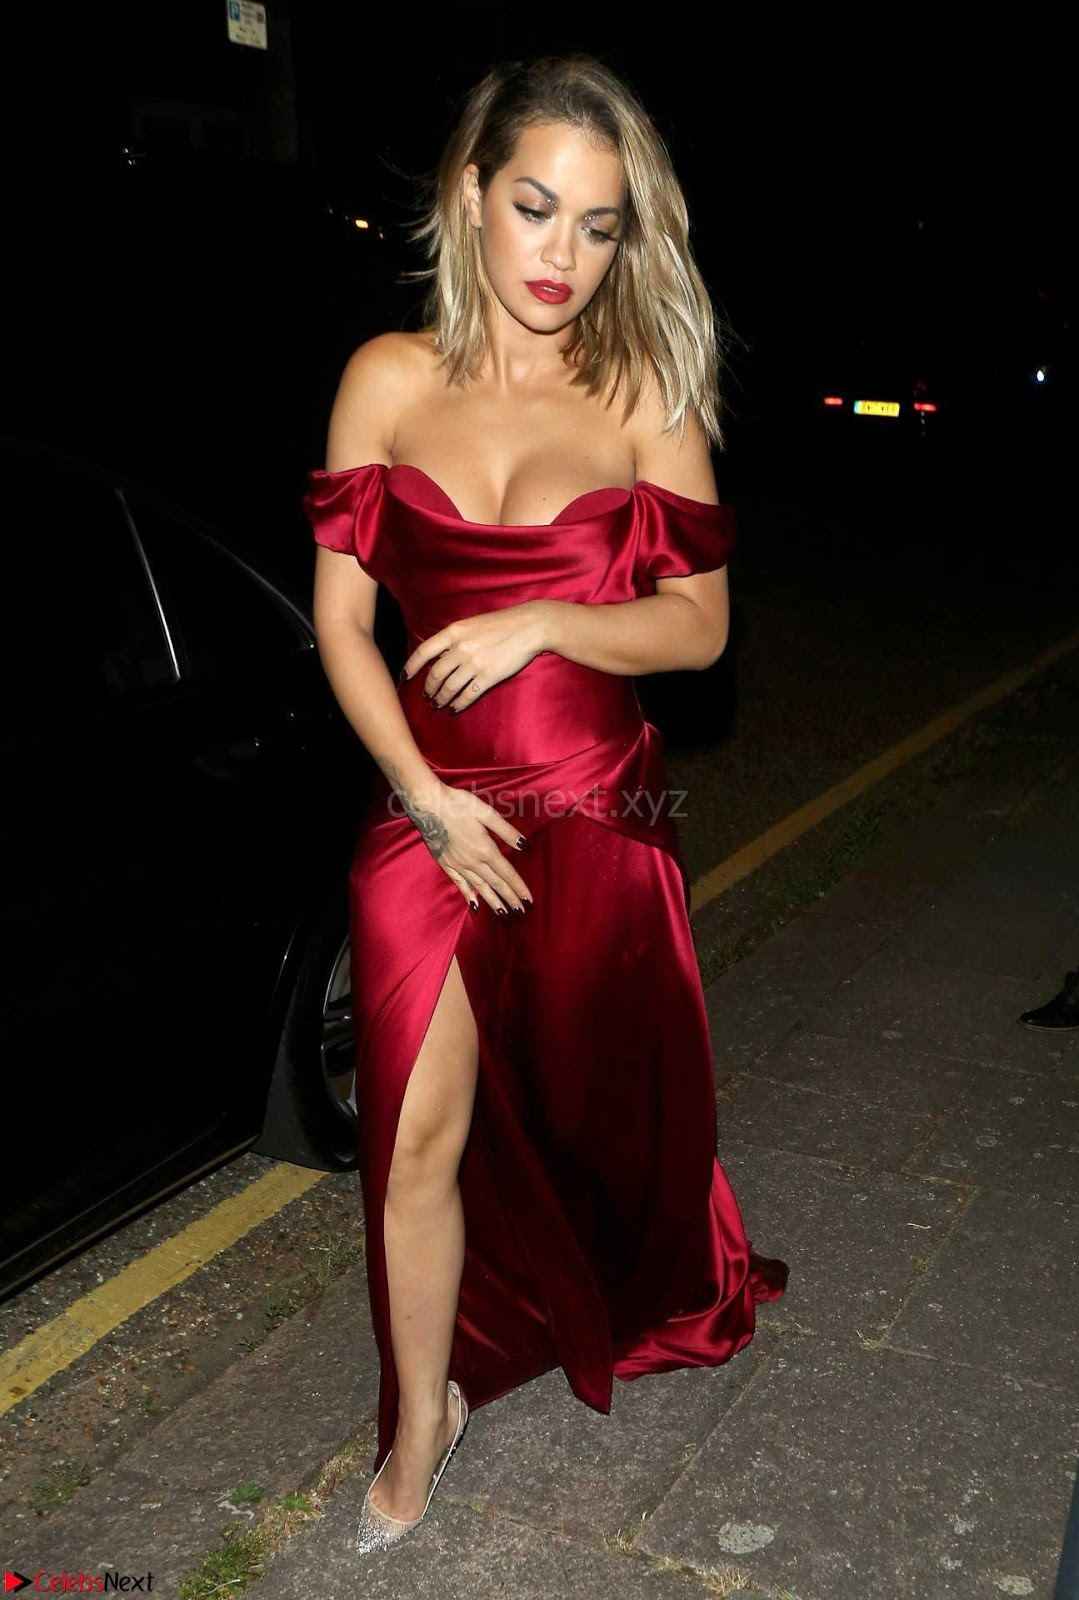 Rita Ora in upskirt downblouse WOW sexy Huge Globes tits falling down